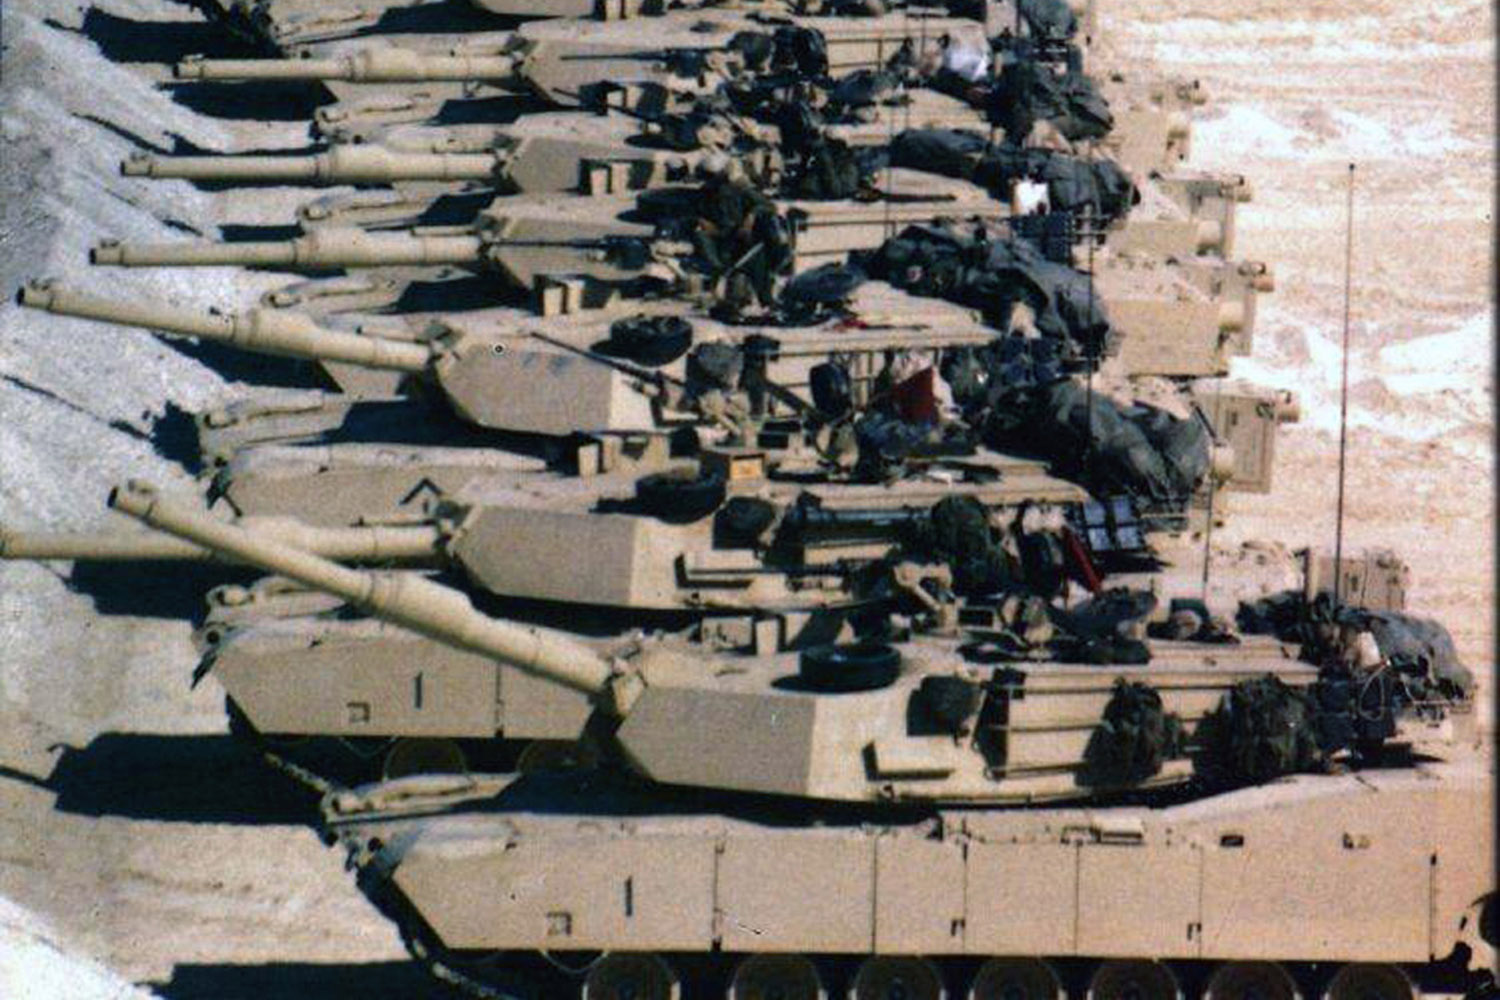 Persian gulf war tank battle